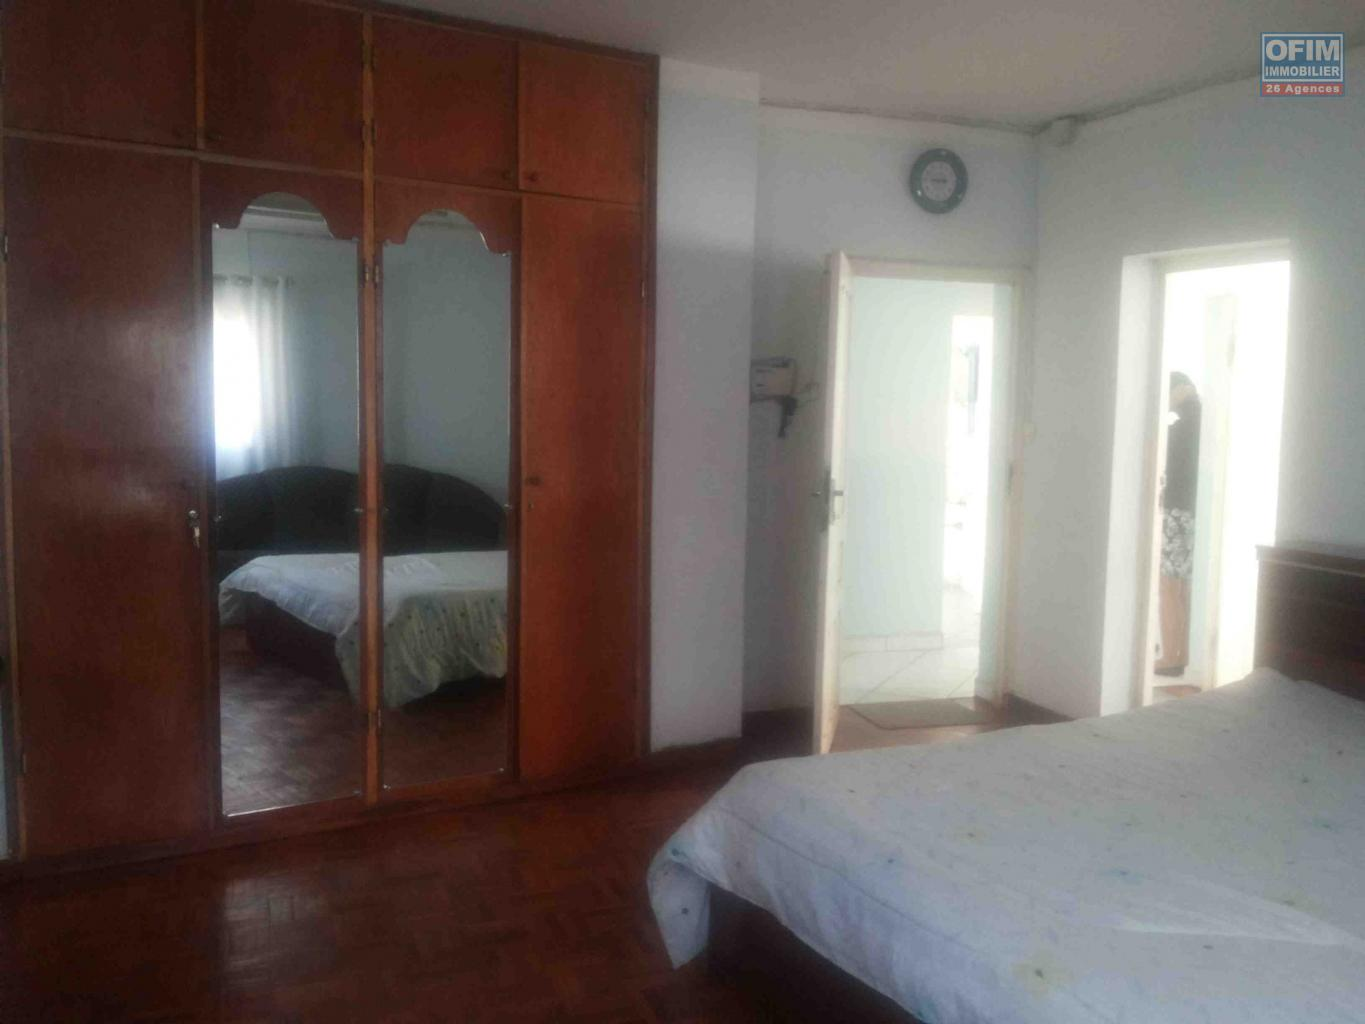 Location appartement antananarivo tananarive a - Louer un appartement meuble ou vide ...